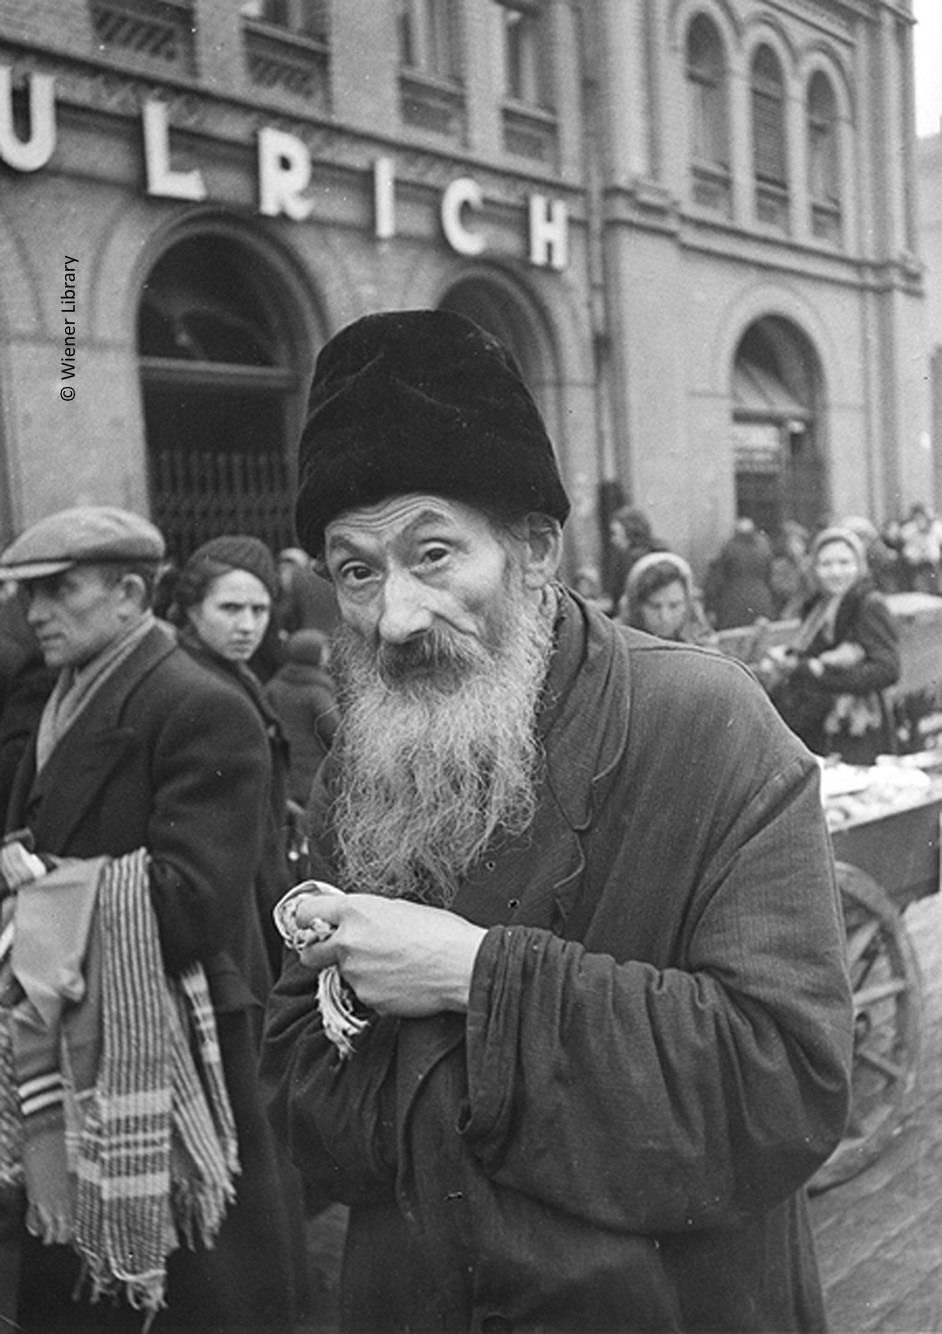 Old man in Warsaw Ghetto